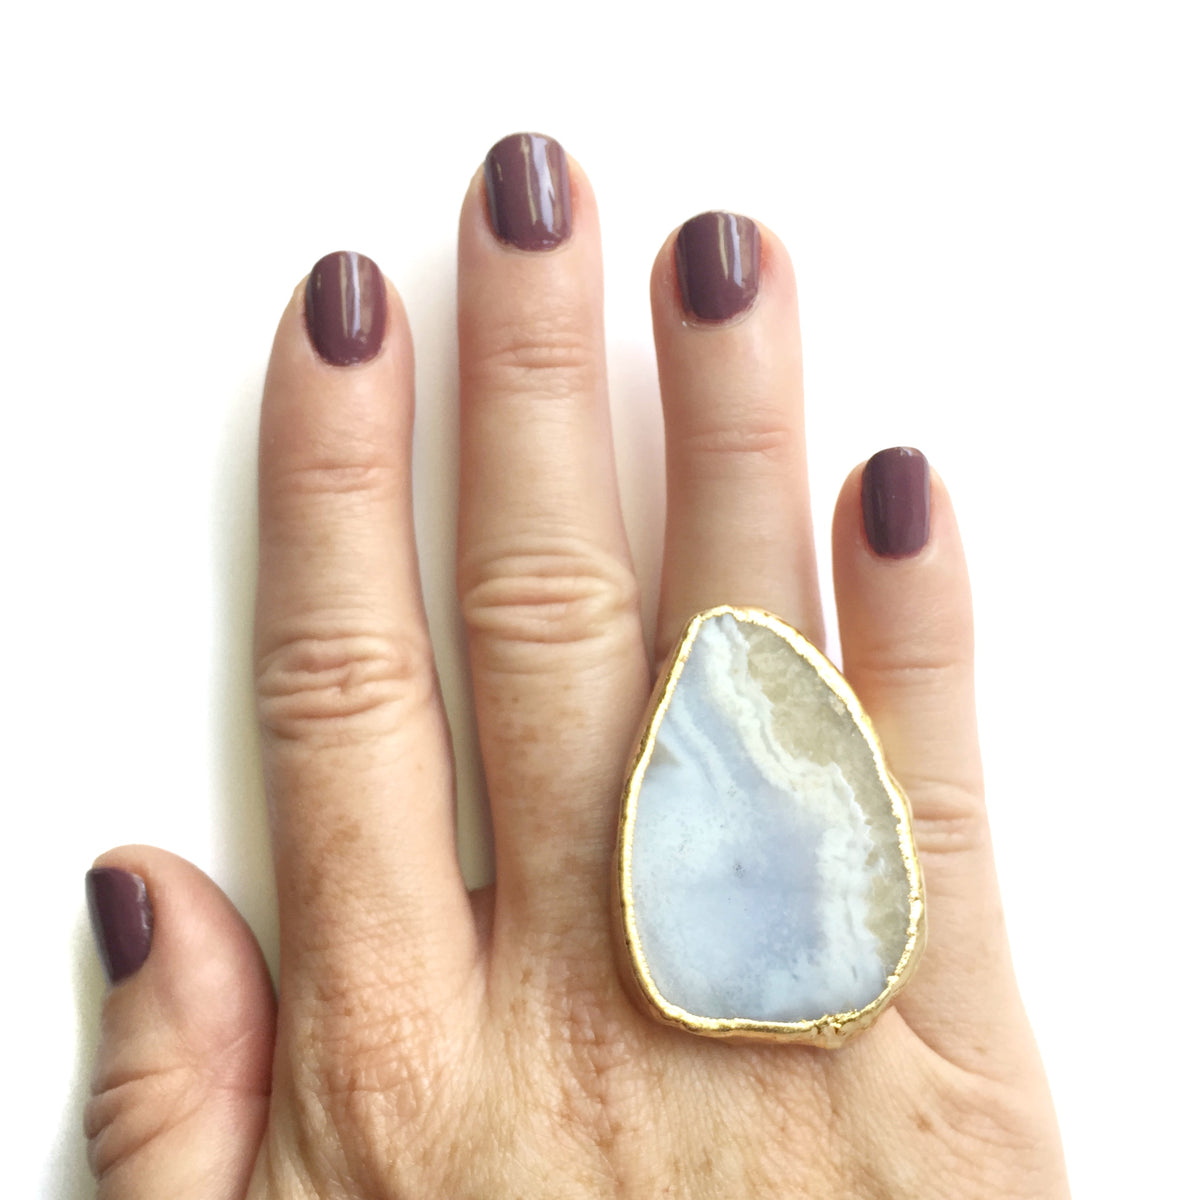 blue lace agate statement ring on hand